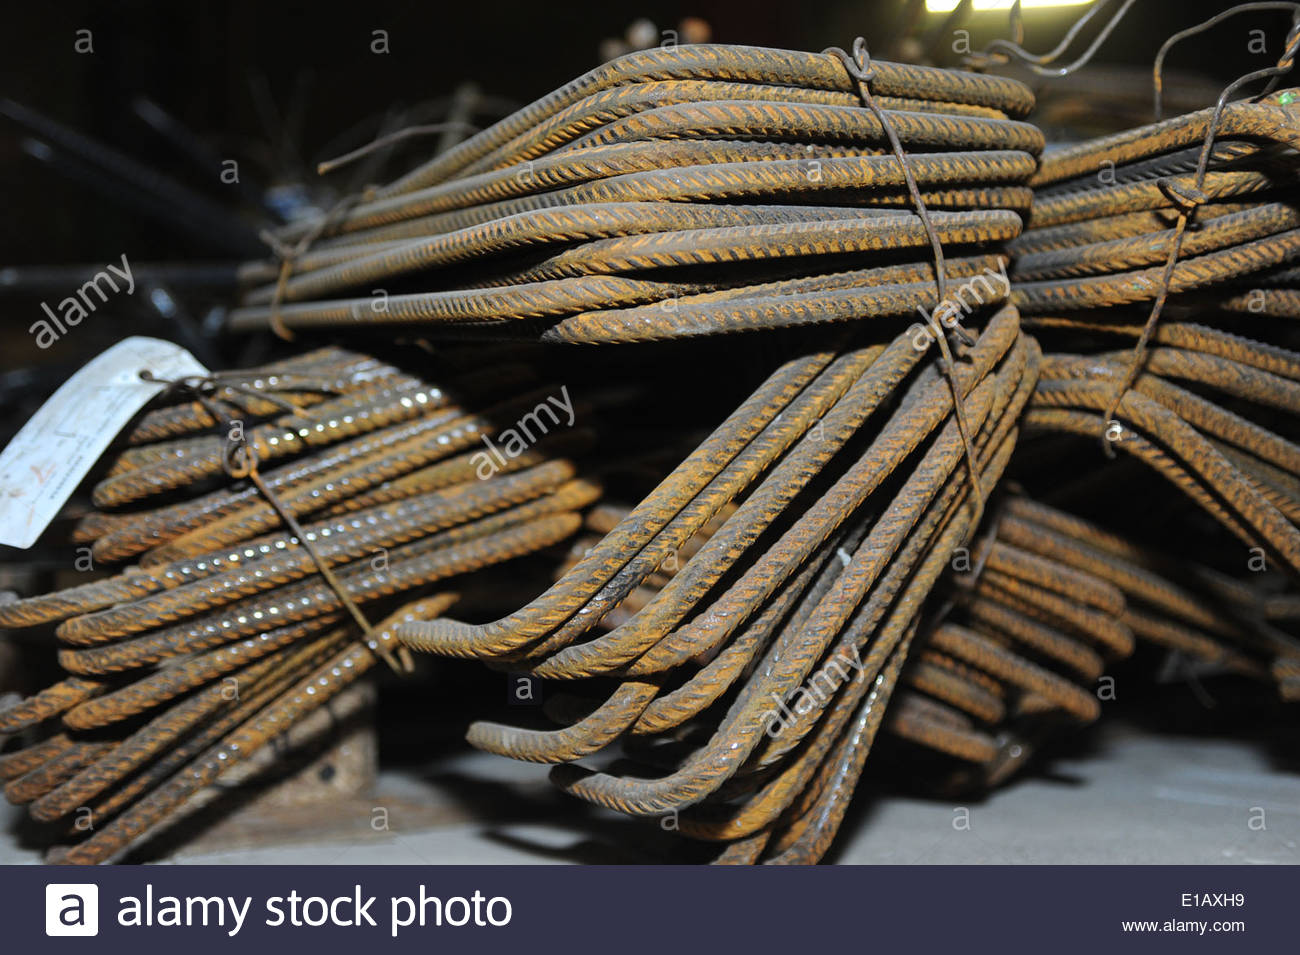 Dag van de Bouw / Open Building Site Day Amsterdam Piles of rebar for reinforced concrete - Stock Image